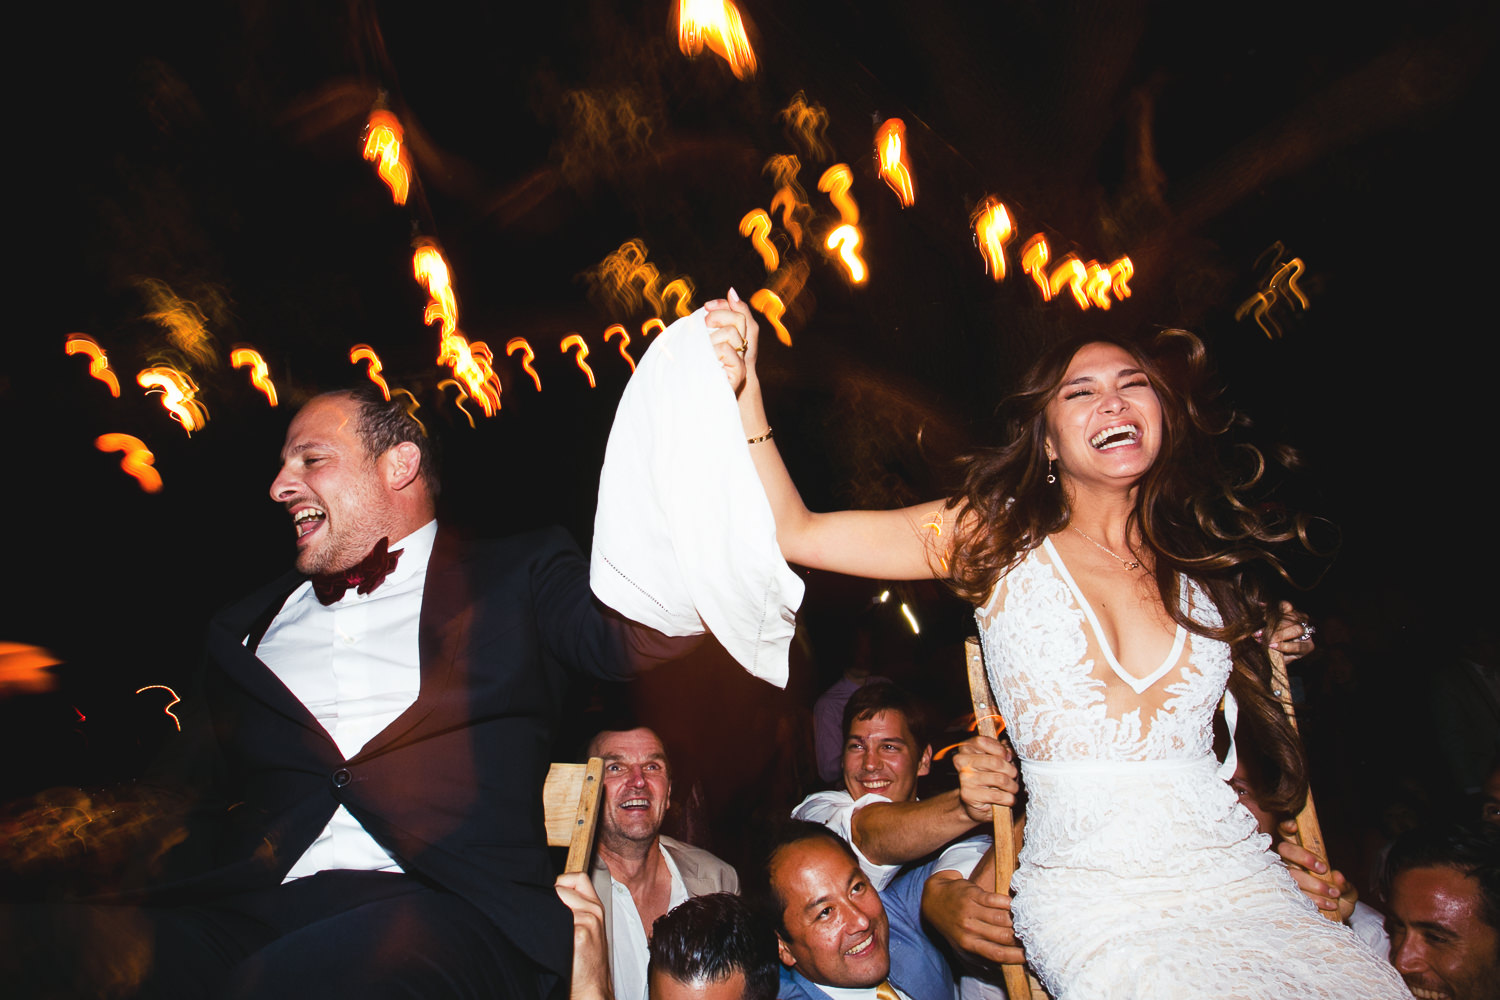 Los Olivos Wedding - Newly Weds Being Hoisted Up By Guests at Wedding Reception